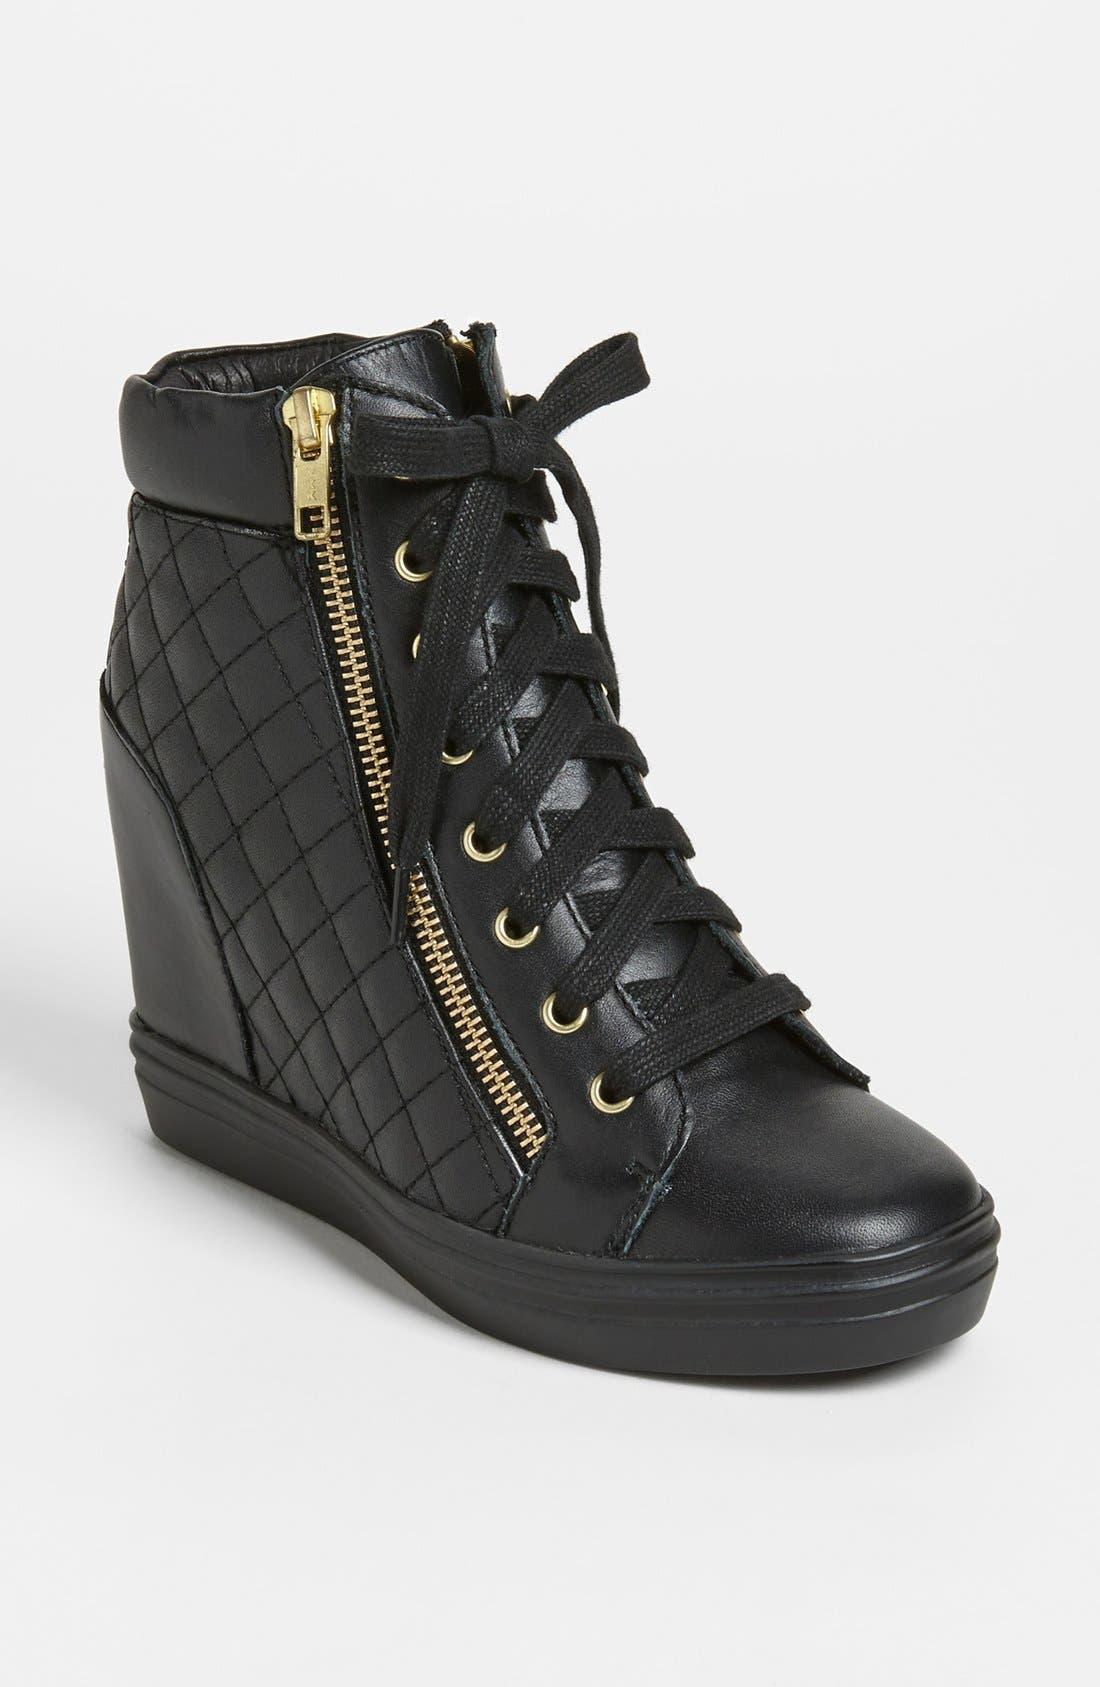 'Zipps' Wedge Sneaker,                             Main thumbnail 1, color,                             001